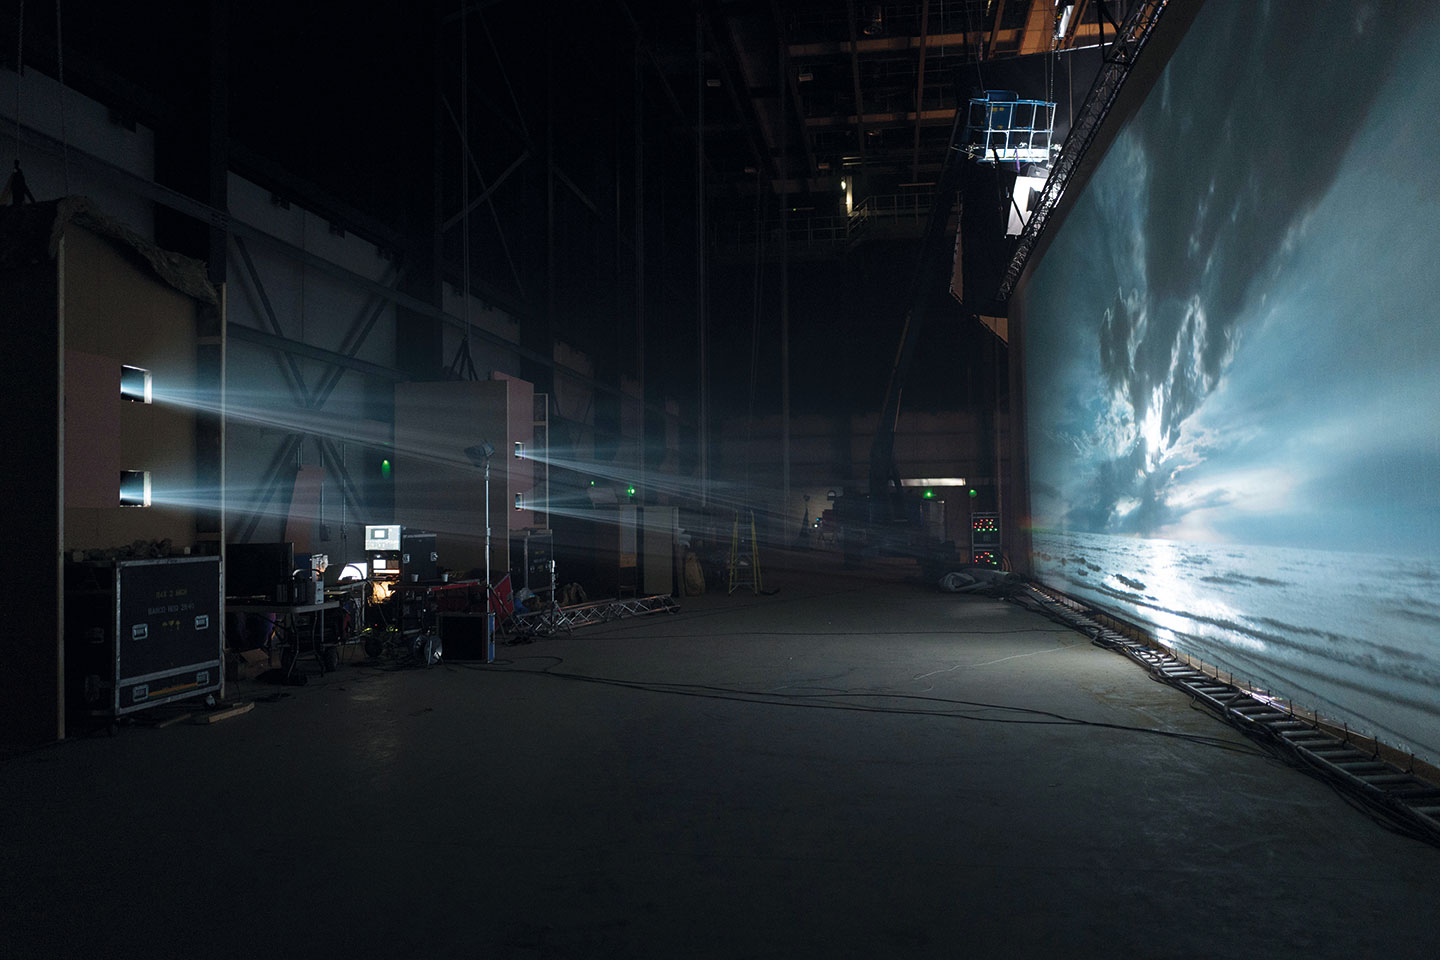 A glimpse of the huge scale of the back projection screen Lester built at Pinewood.